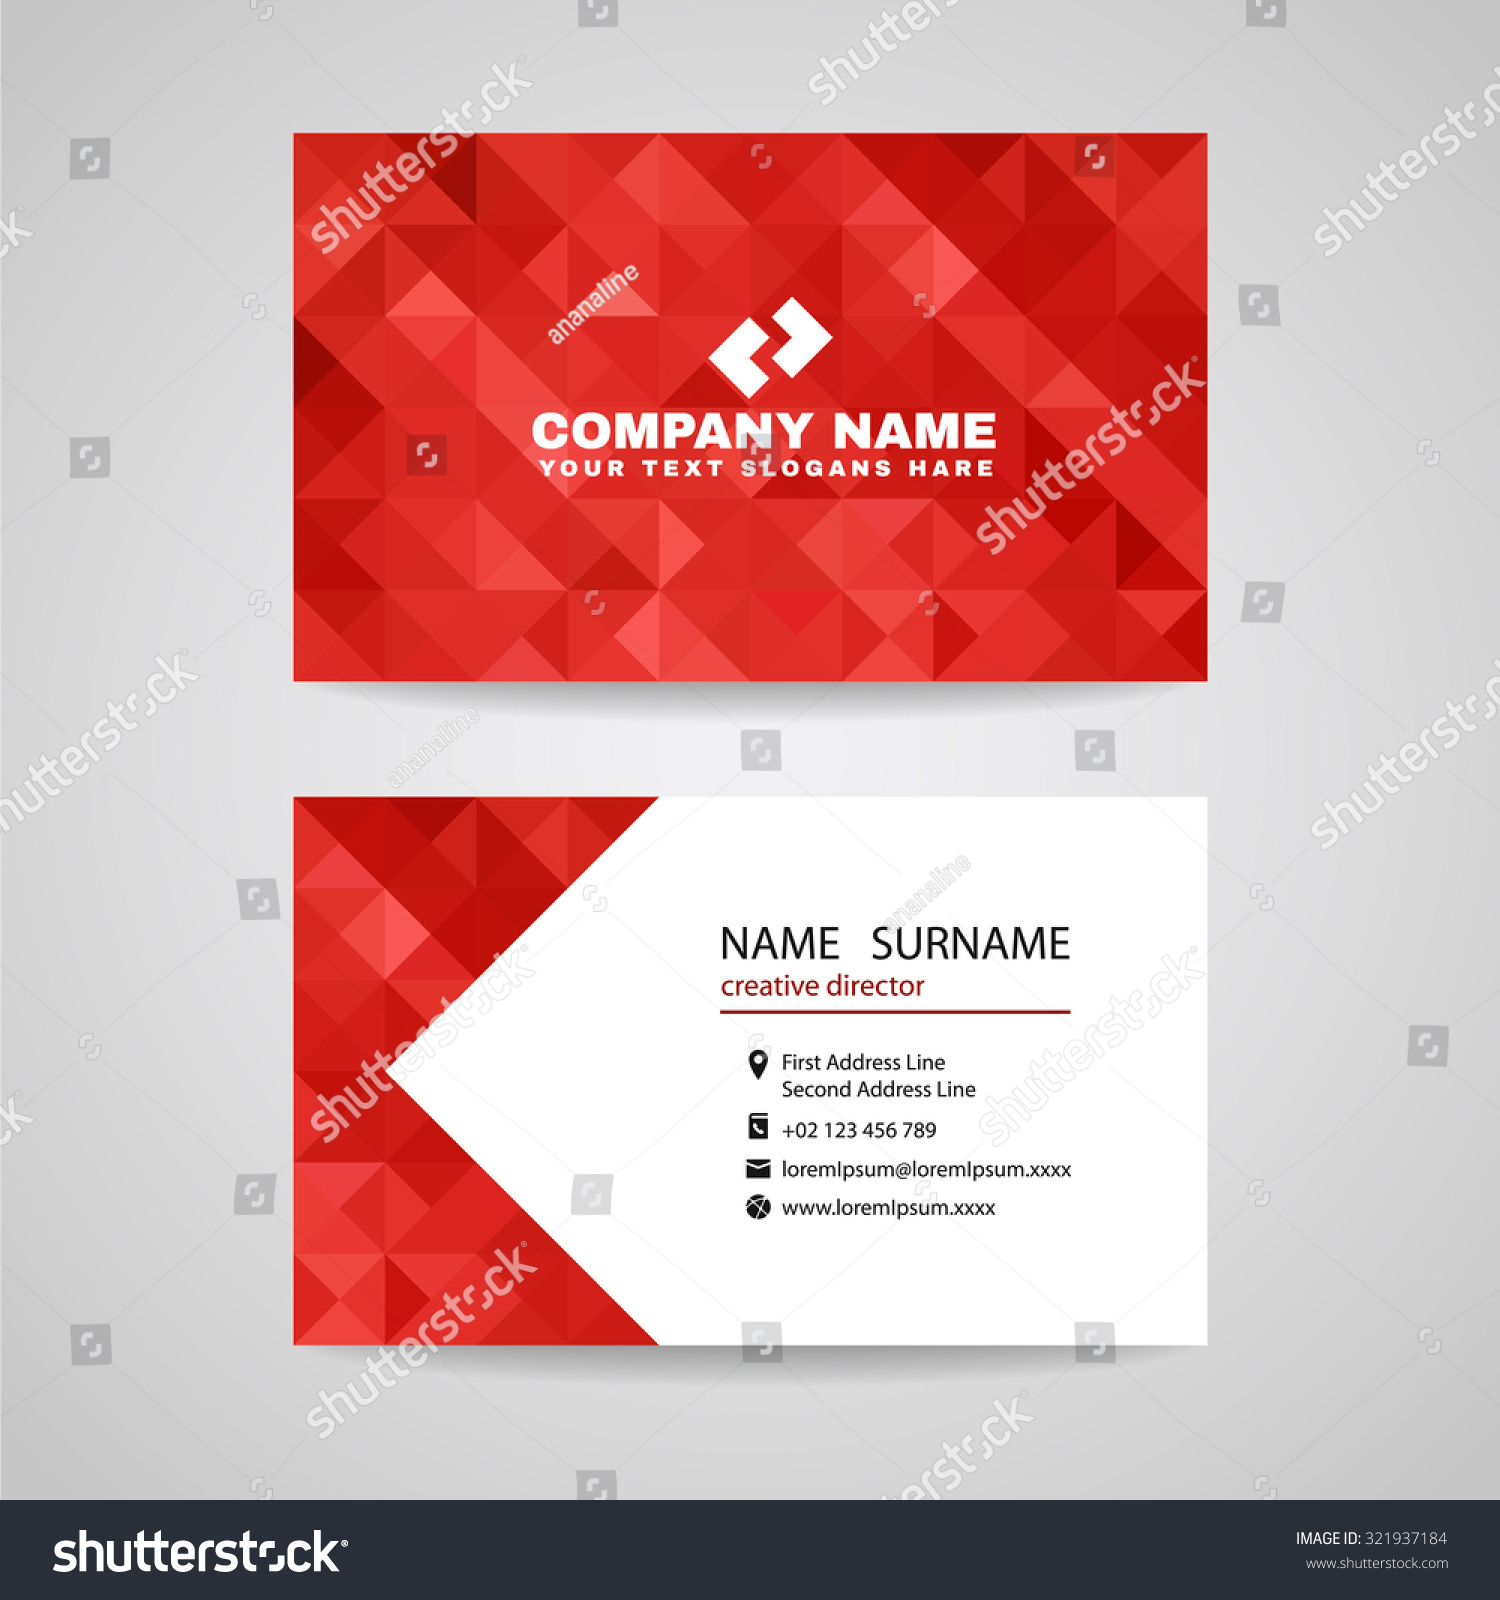 Business card red triangle crystal glass stock vector royalty free business card red triangle crystal glass abstract background design reheart Images